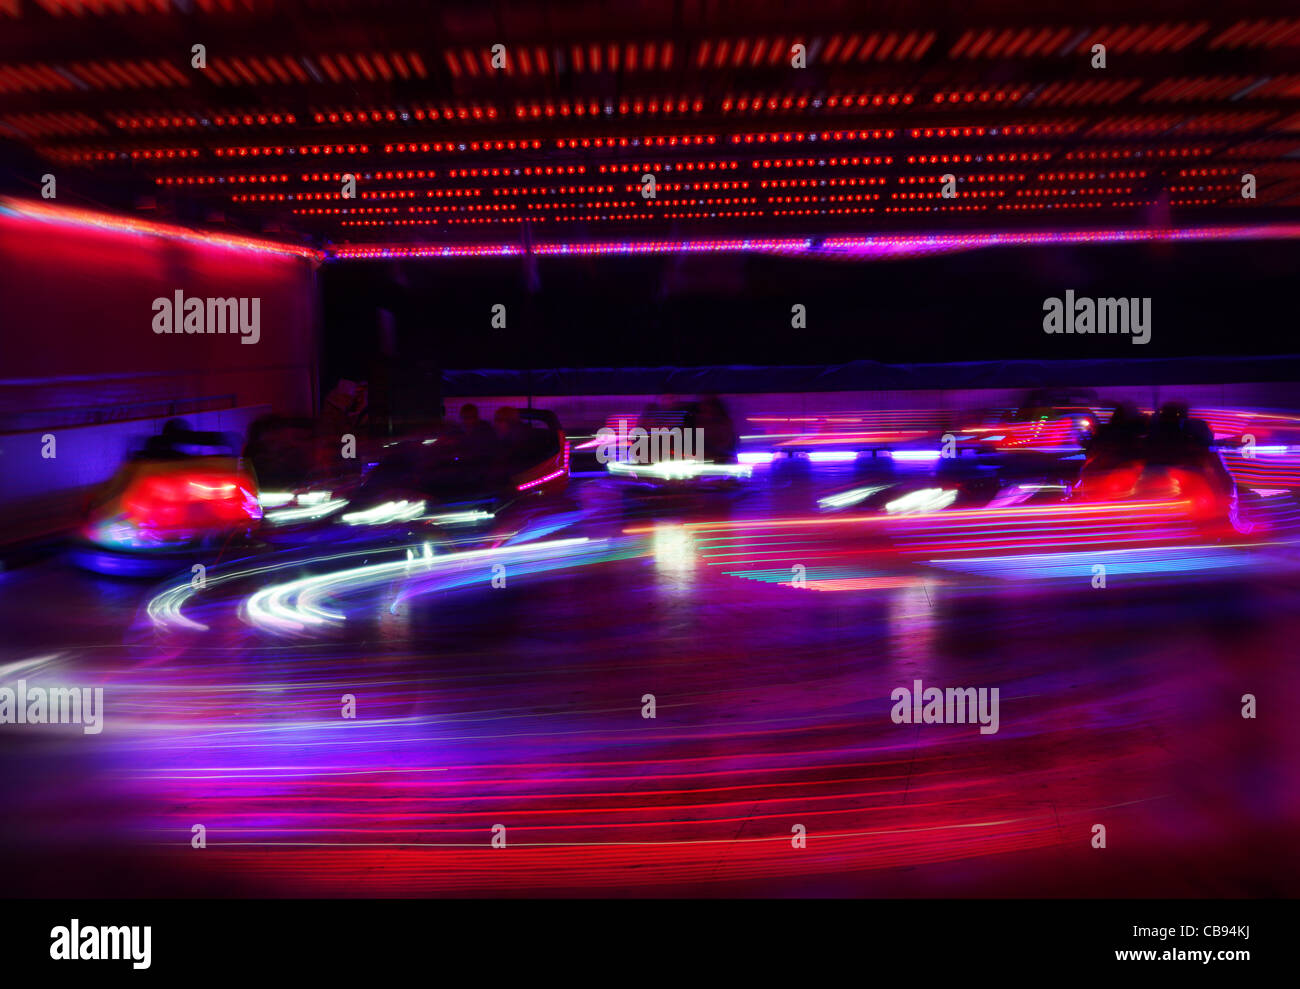 dodgem cars in motion - Stock Image